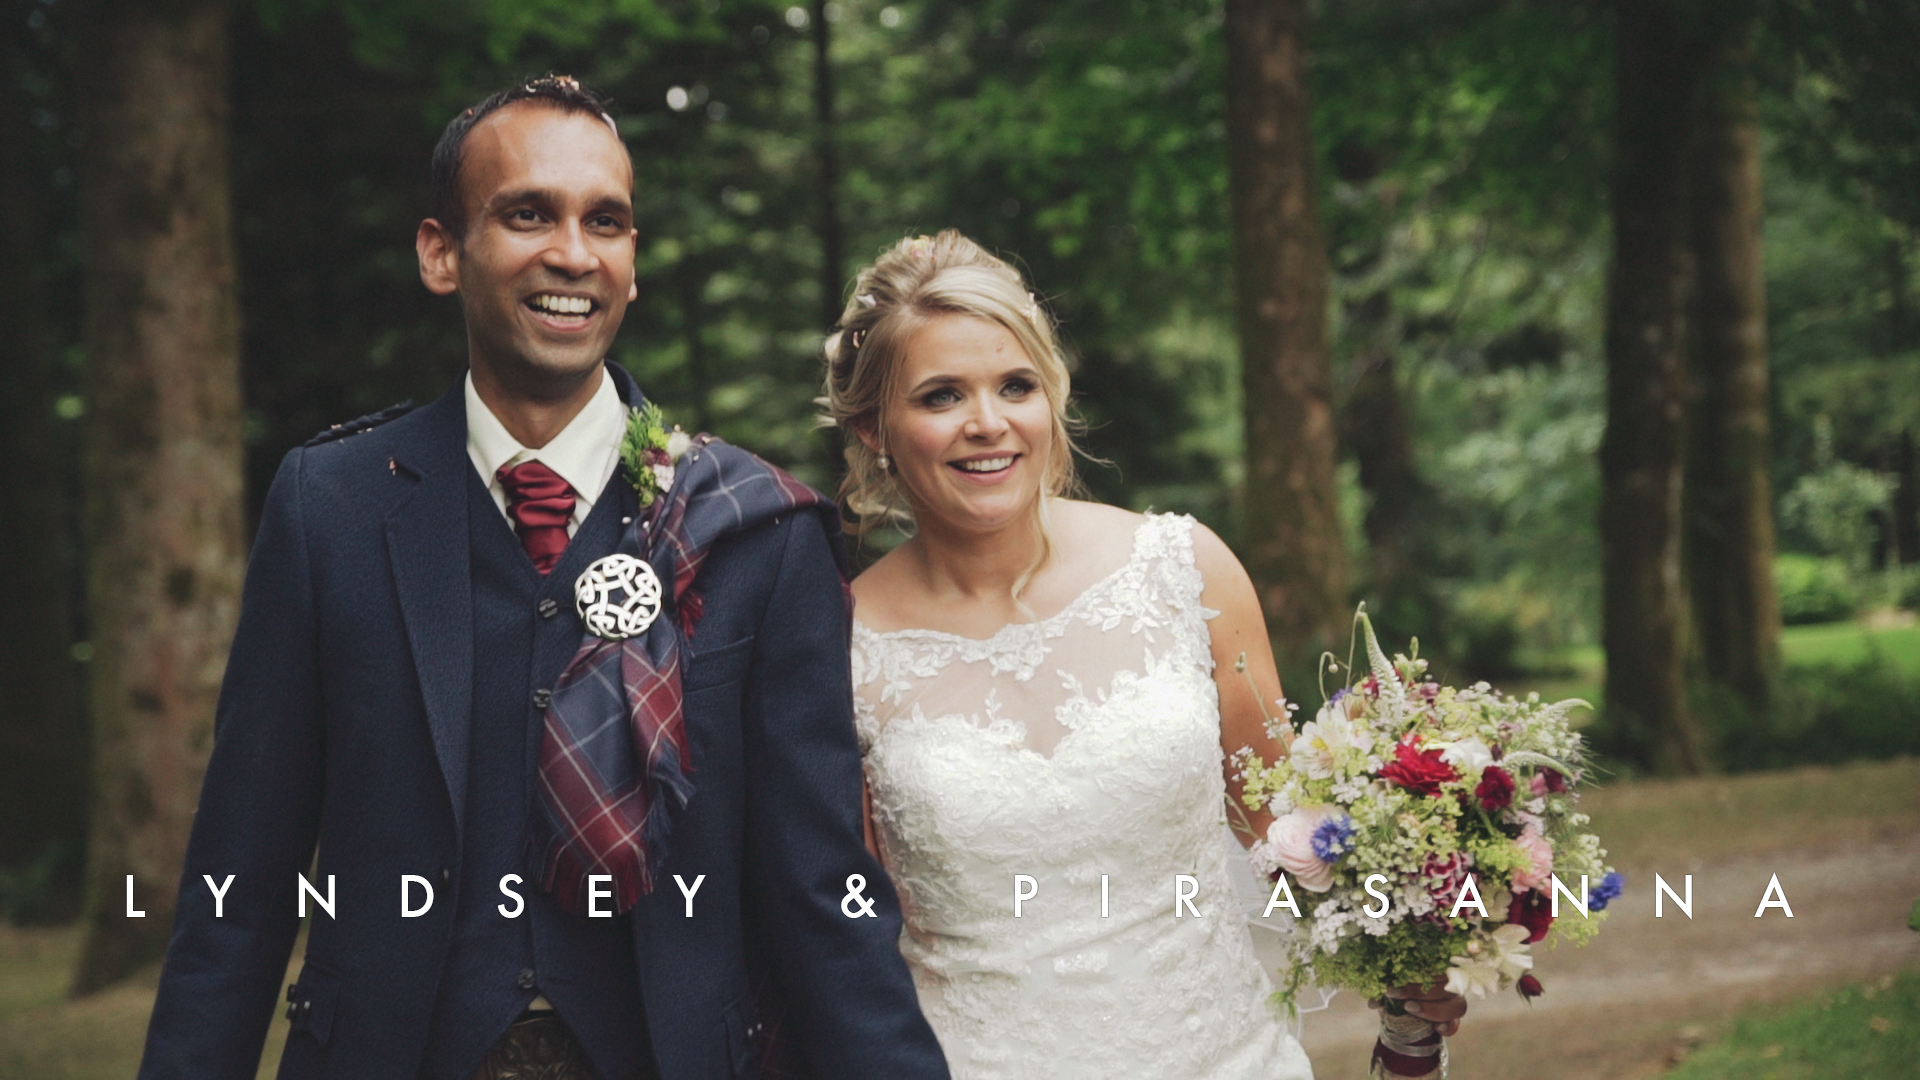 Lyndsey Reid + Pirasanna Vivek | Dumfries, United Kingdom | Barwhillanty Estate